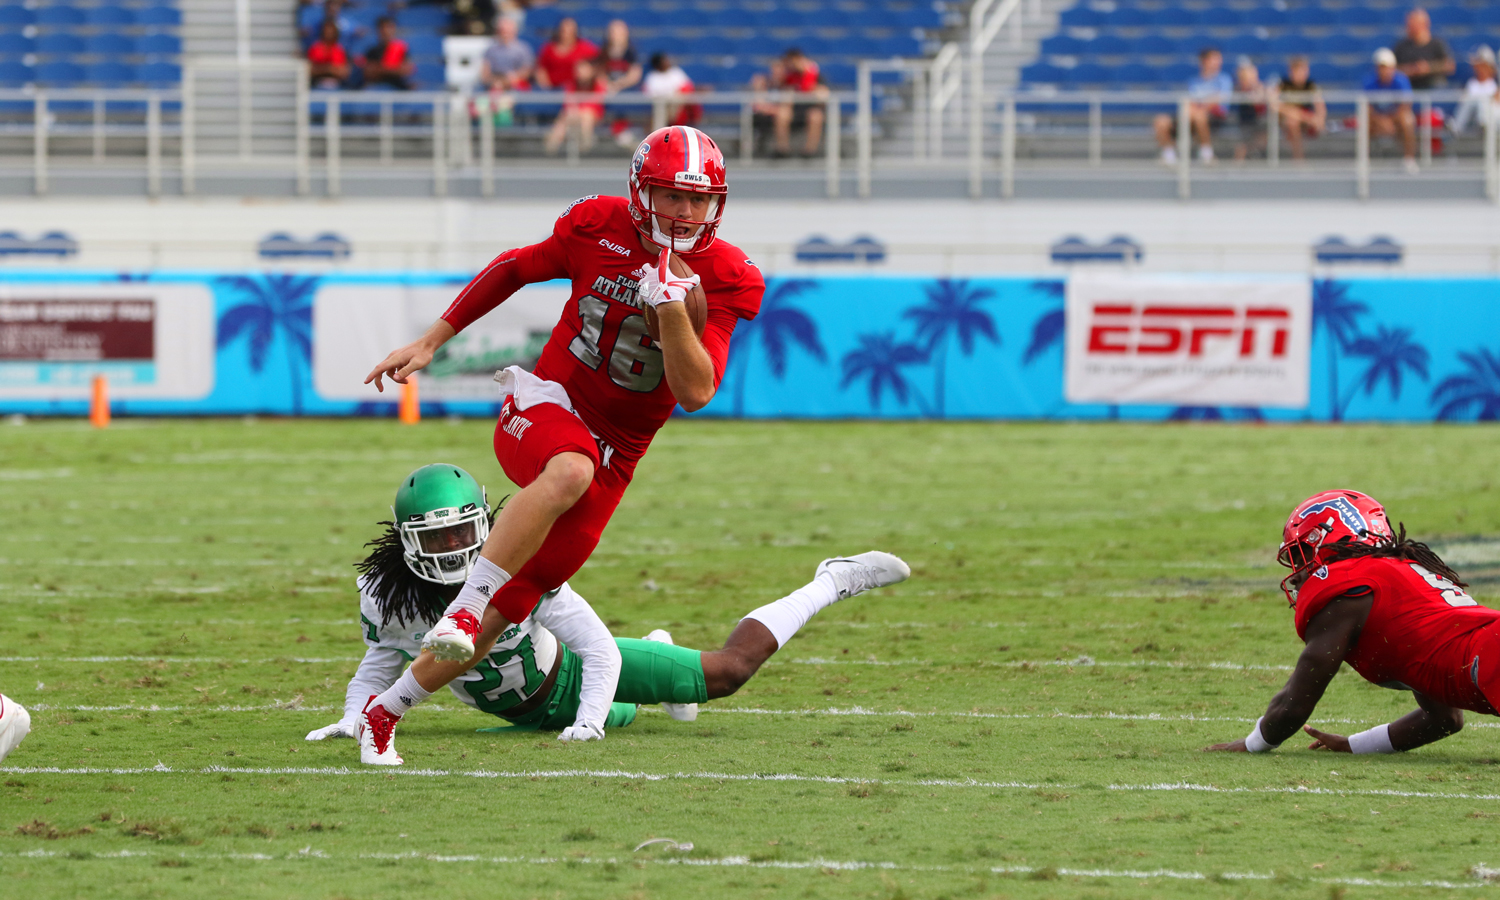 Lane Kiffin's FAU team breaks out with record-setting game